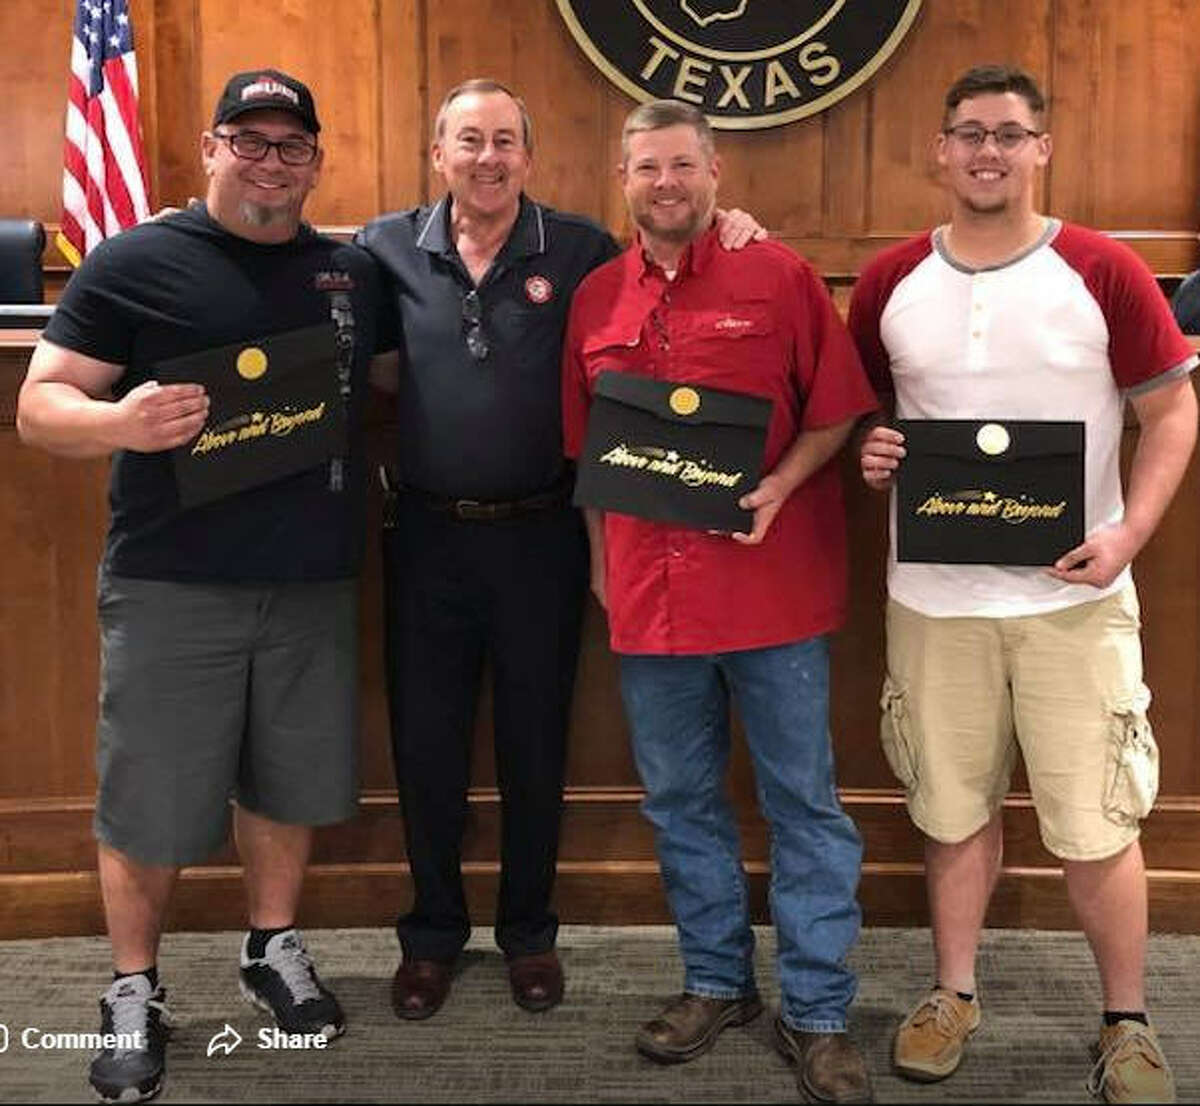 Katy Mayor Chuck Brawner and City Council honored Harvey Heroes at their Nov. 13 City Council meeting. From left are: Doug Johnson, Brawner, Pat Lester and Lane Johnson. Brawner said they rescued more than 300 people Aug. 26-27.